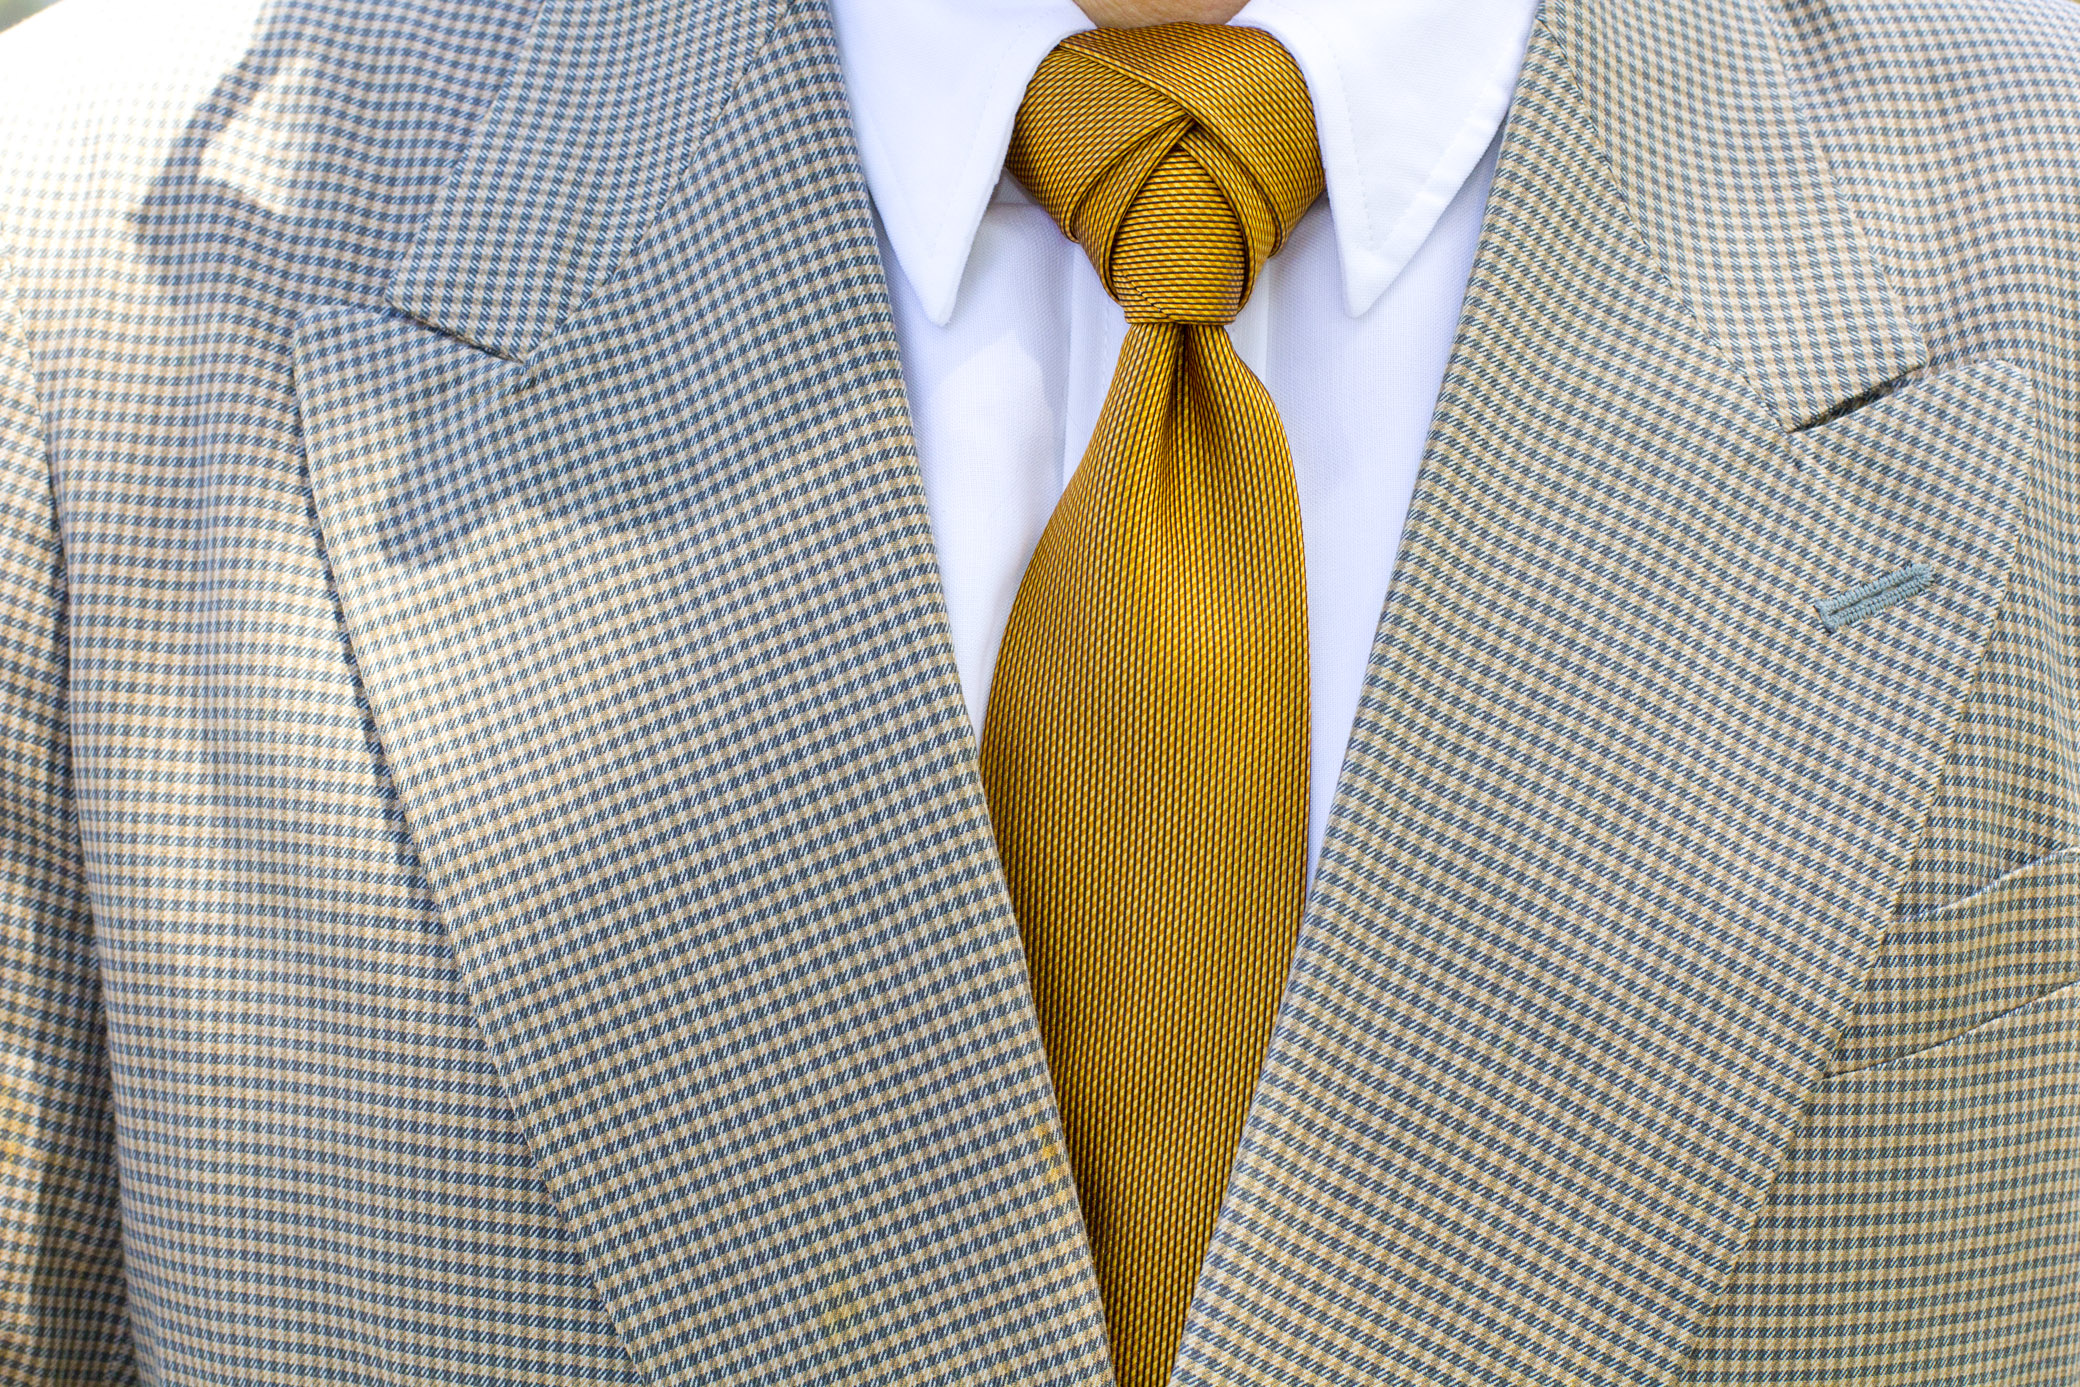 How to Make an Eldgredge Tie Knot